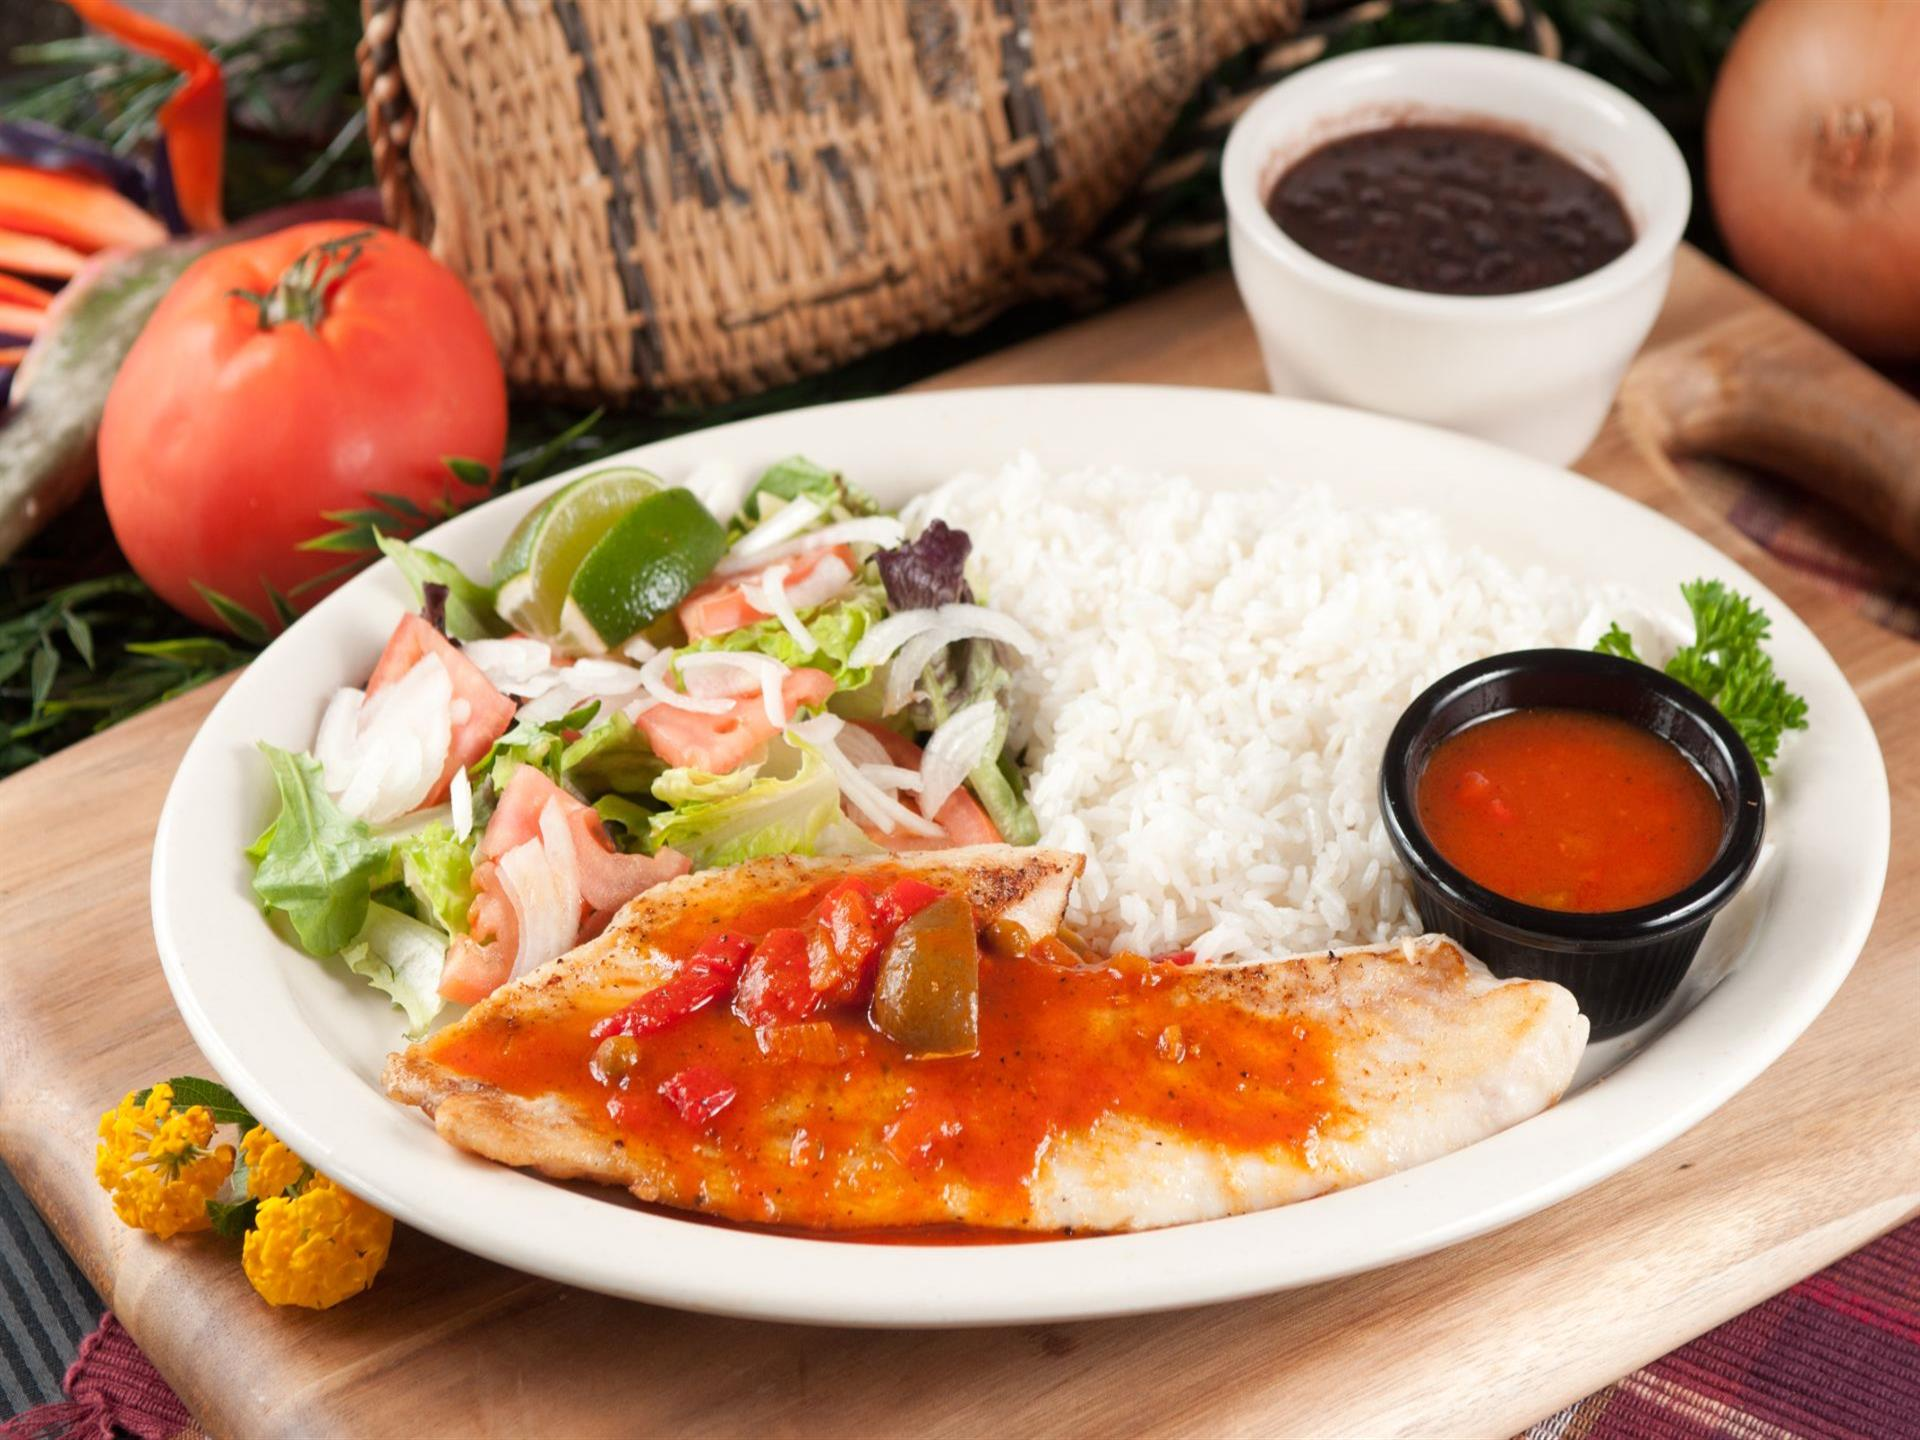 Pargo Criollo. Grilled red snapper filet with Creole sauce on top. Salad and white rice on the side. Plate placed on a wood tray. Tomato, onion and cup of black beans in the background.